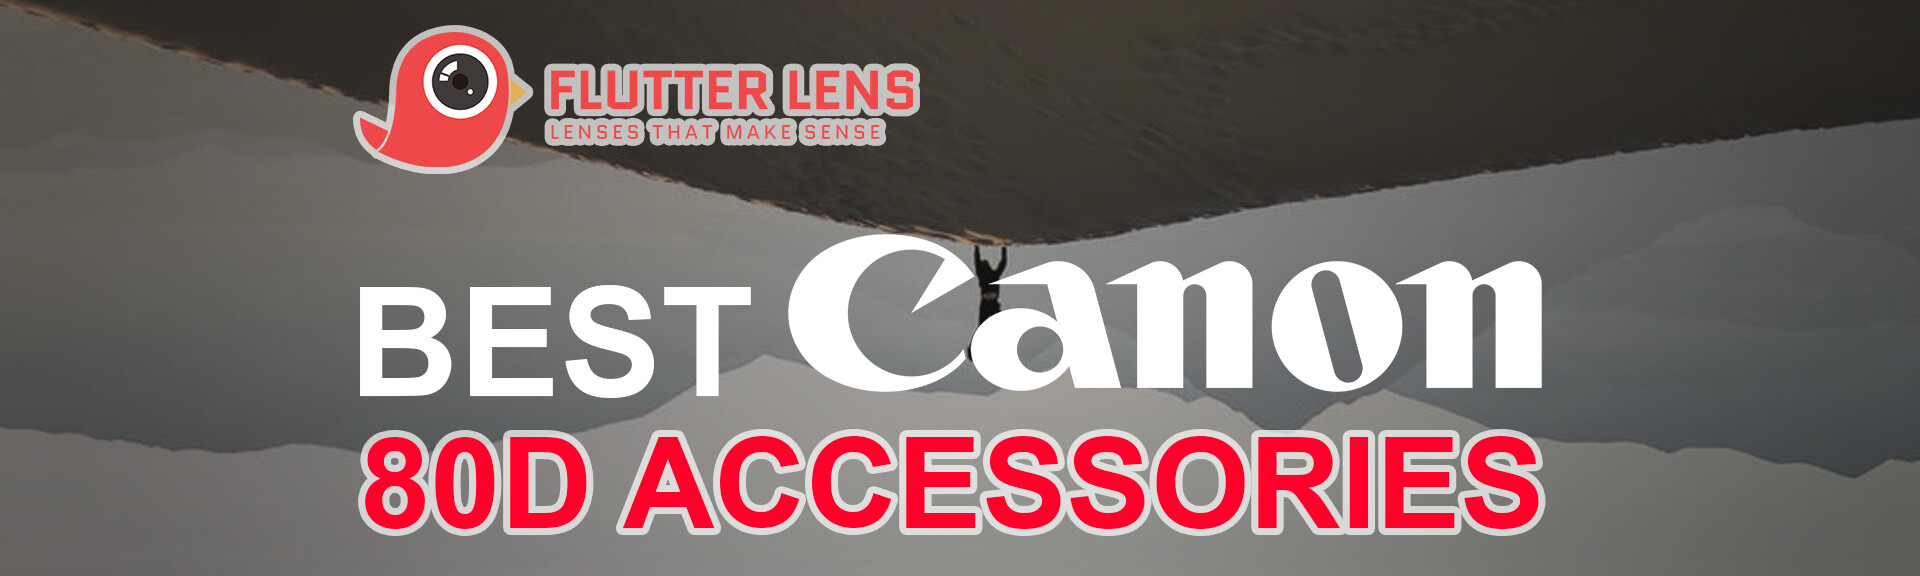 Top 10 Must Have Canon 80D Accessories in 2019 | Flutter Lens